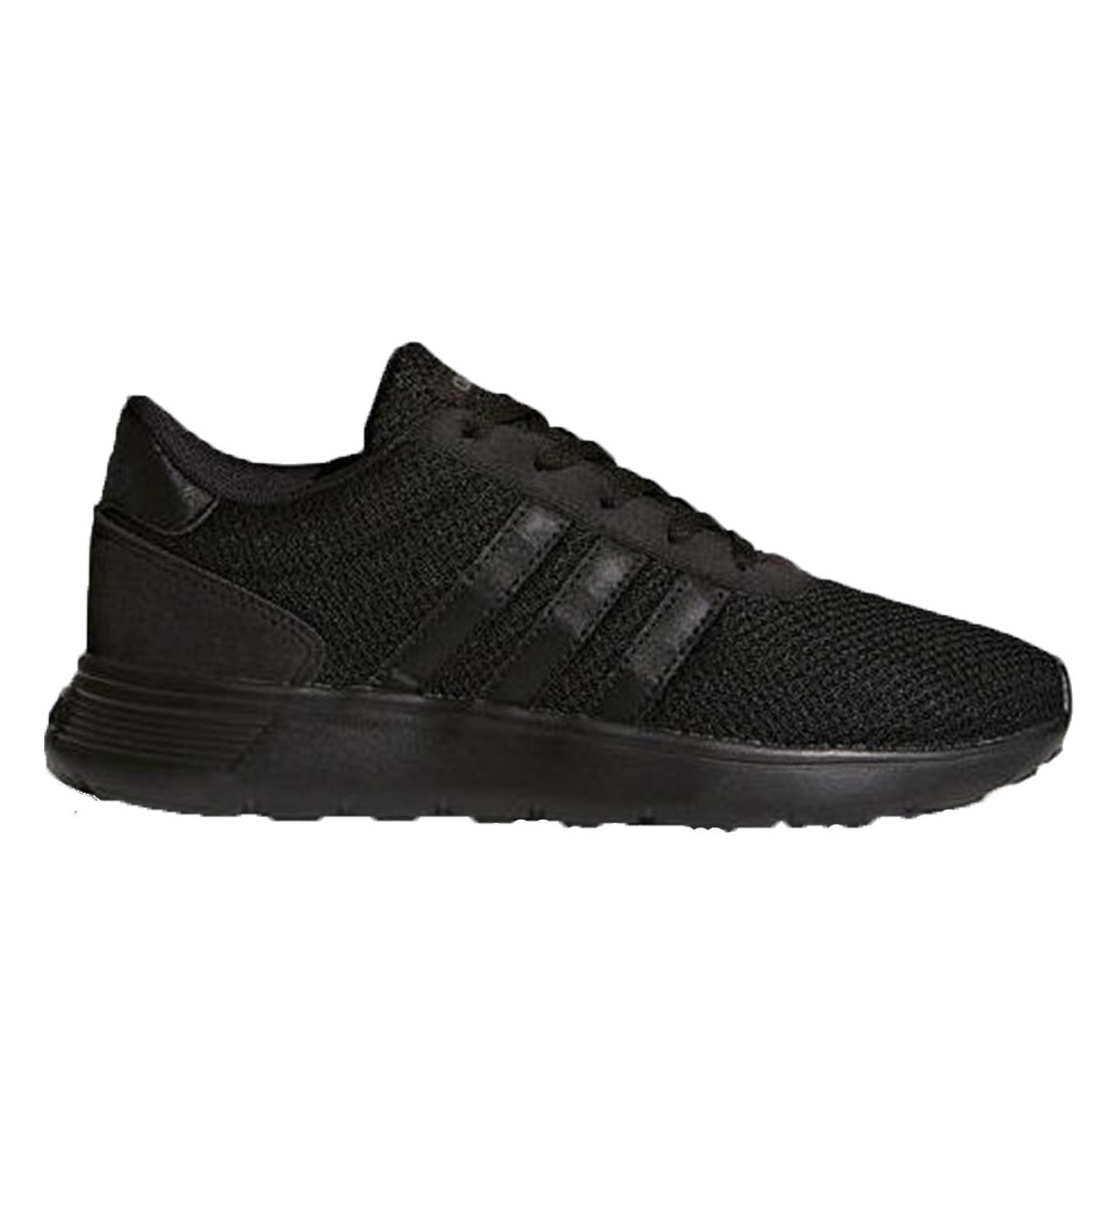 adidas Εφηβικό Παπούτσι Athleisure Ss18 Kids Laces Ftw BC0073